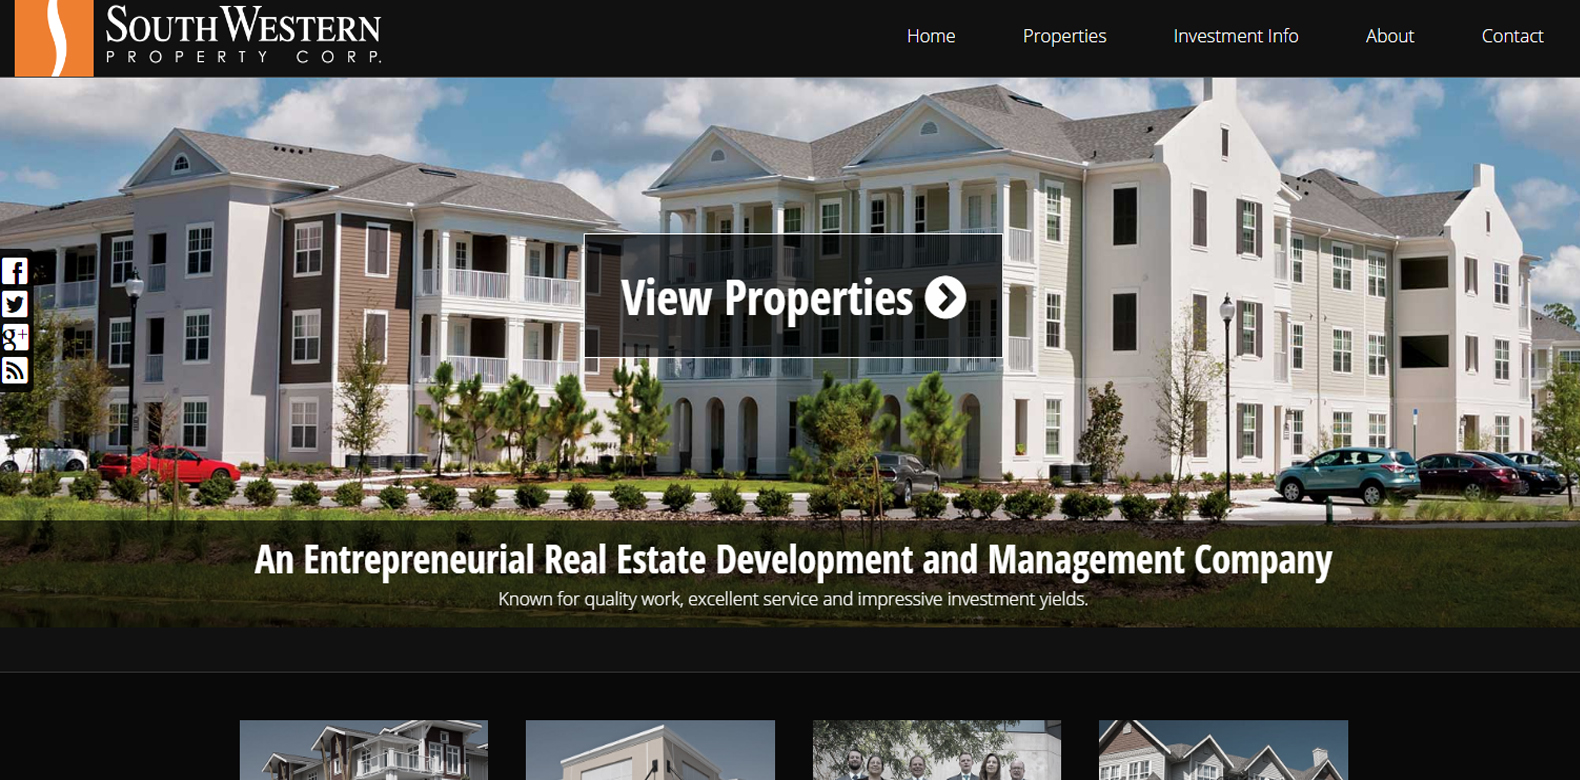 New Website Launch: SouthWestern Property Corp.